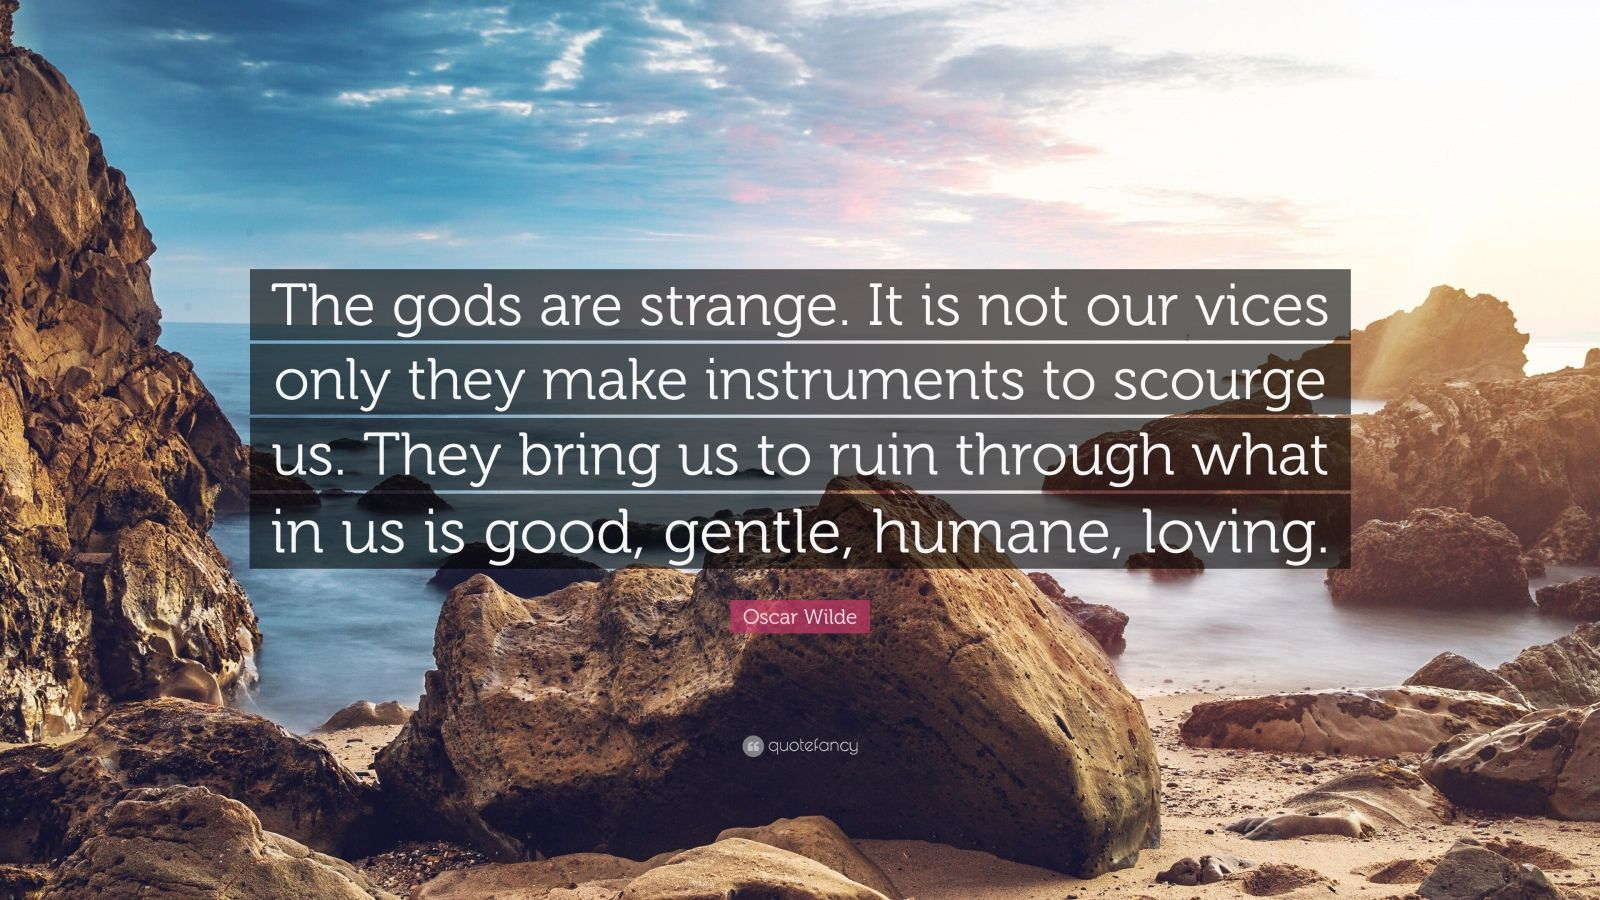 """Oscar Wilde Quote: """"The gods are strange. It is not our vices only they make instruments to scourge us. They bring us to ruin through what in us is good, gentle, humane, loving."""""""